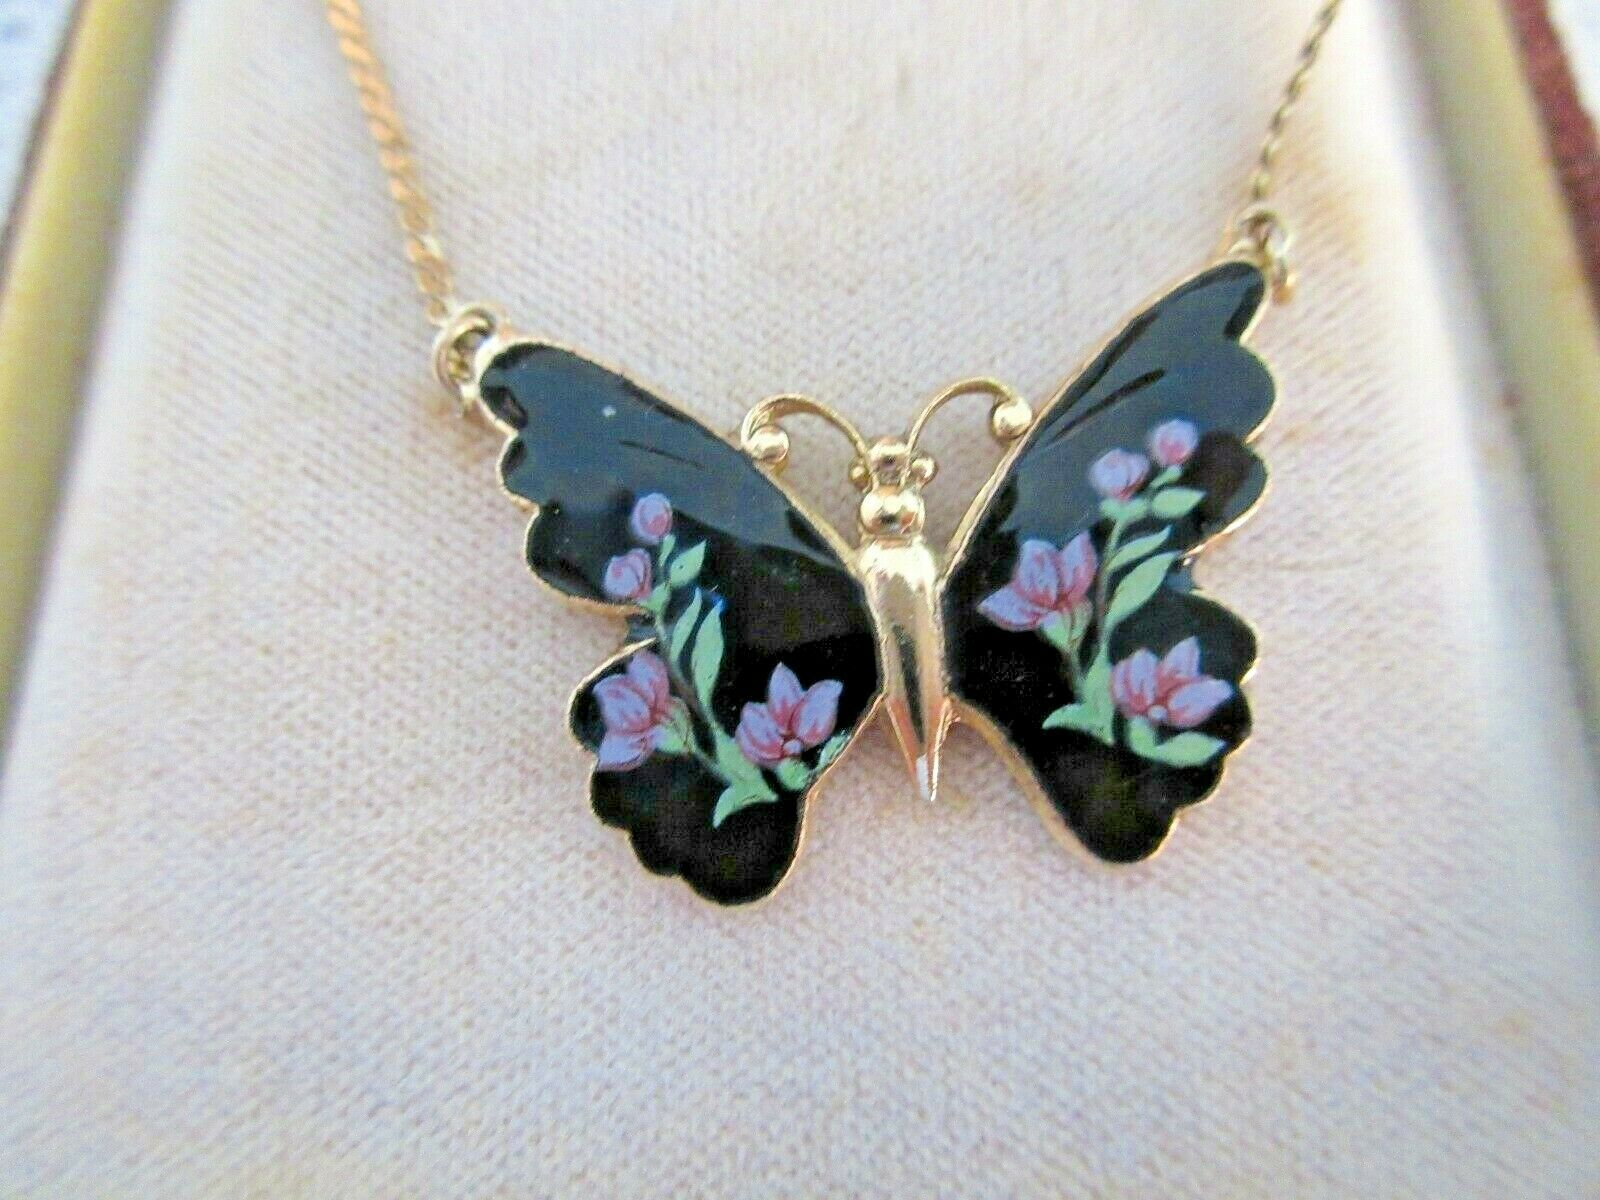 1928 BRAND NECKLACE BUTTERFLY ENAMEL BLACK MAUVE FLOWERS GOLD CHAIN BOXED